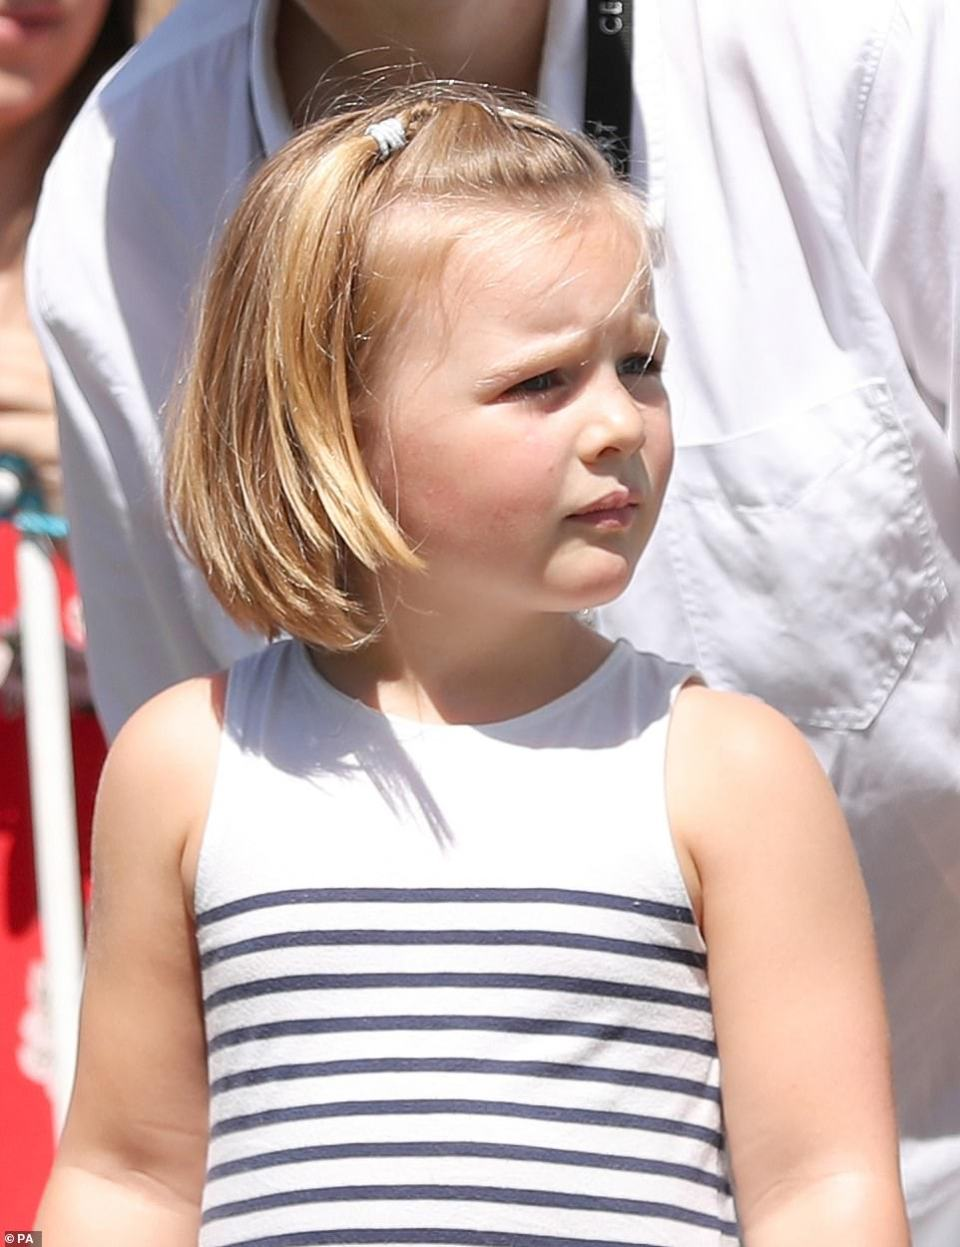 Mia Tindall is the eldest daughter of Zara and Mike Tindall and is a firm favourite among royal fans